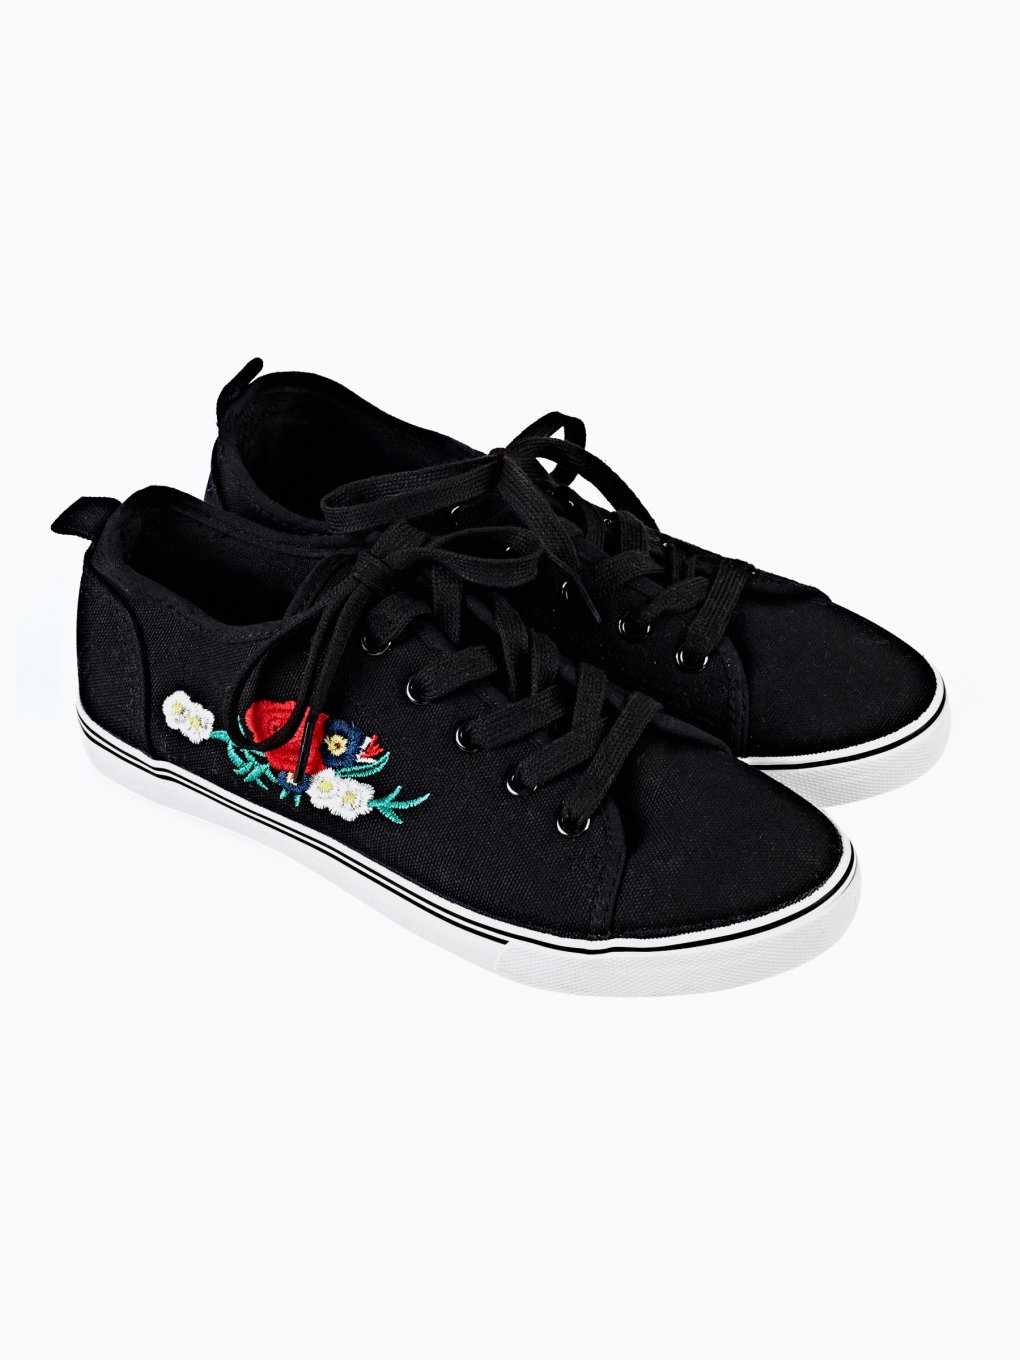 EMBROIDERED LACE UP CANVAS SNEAKERS